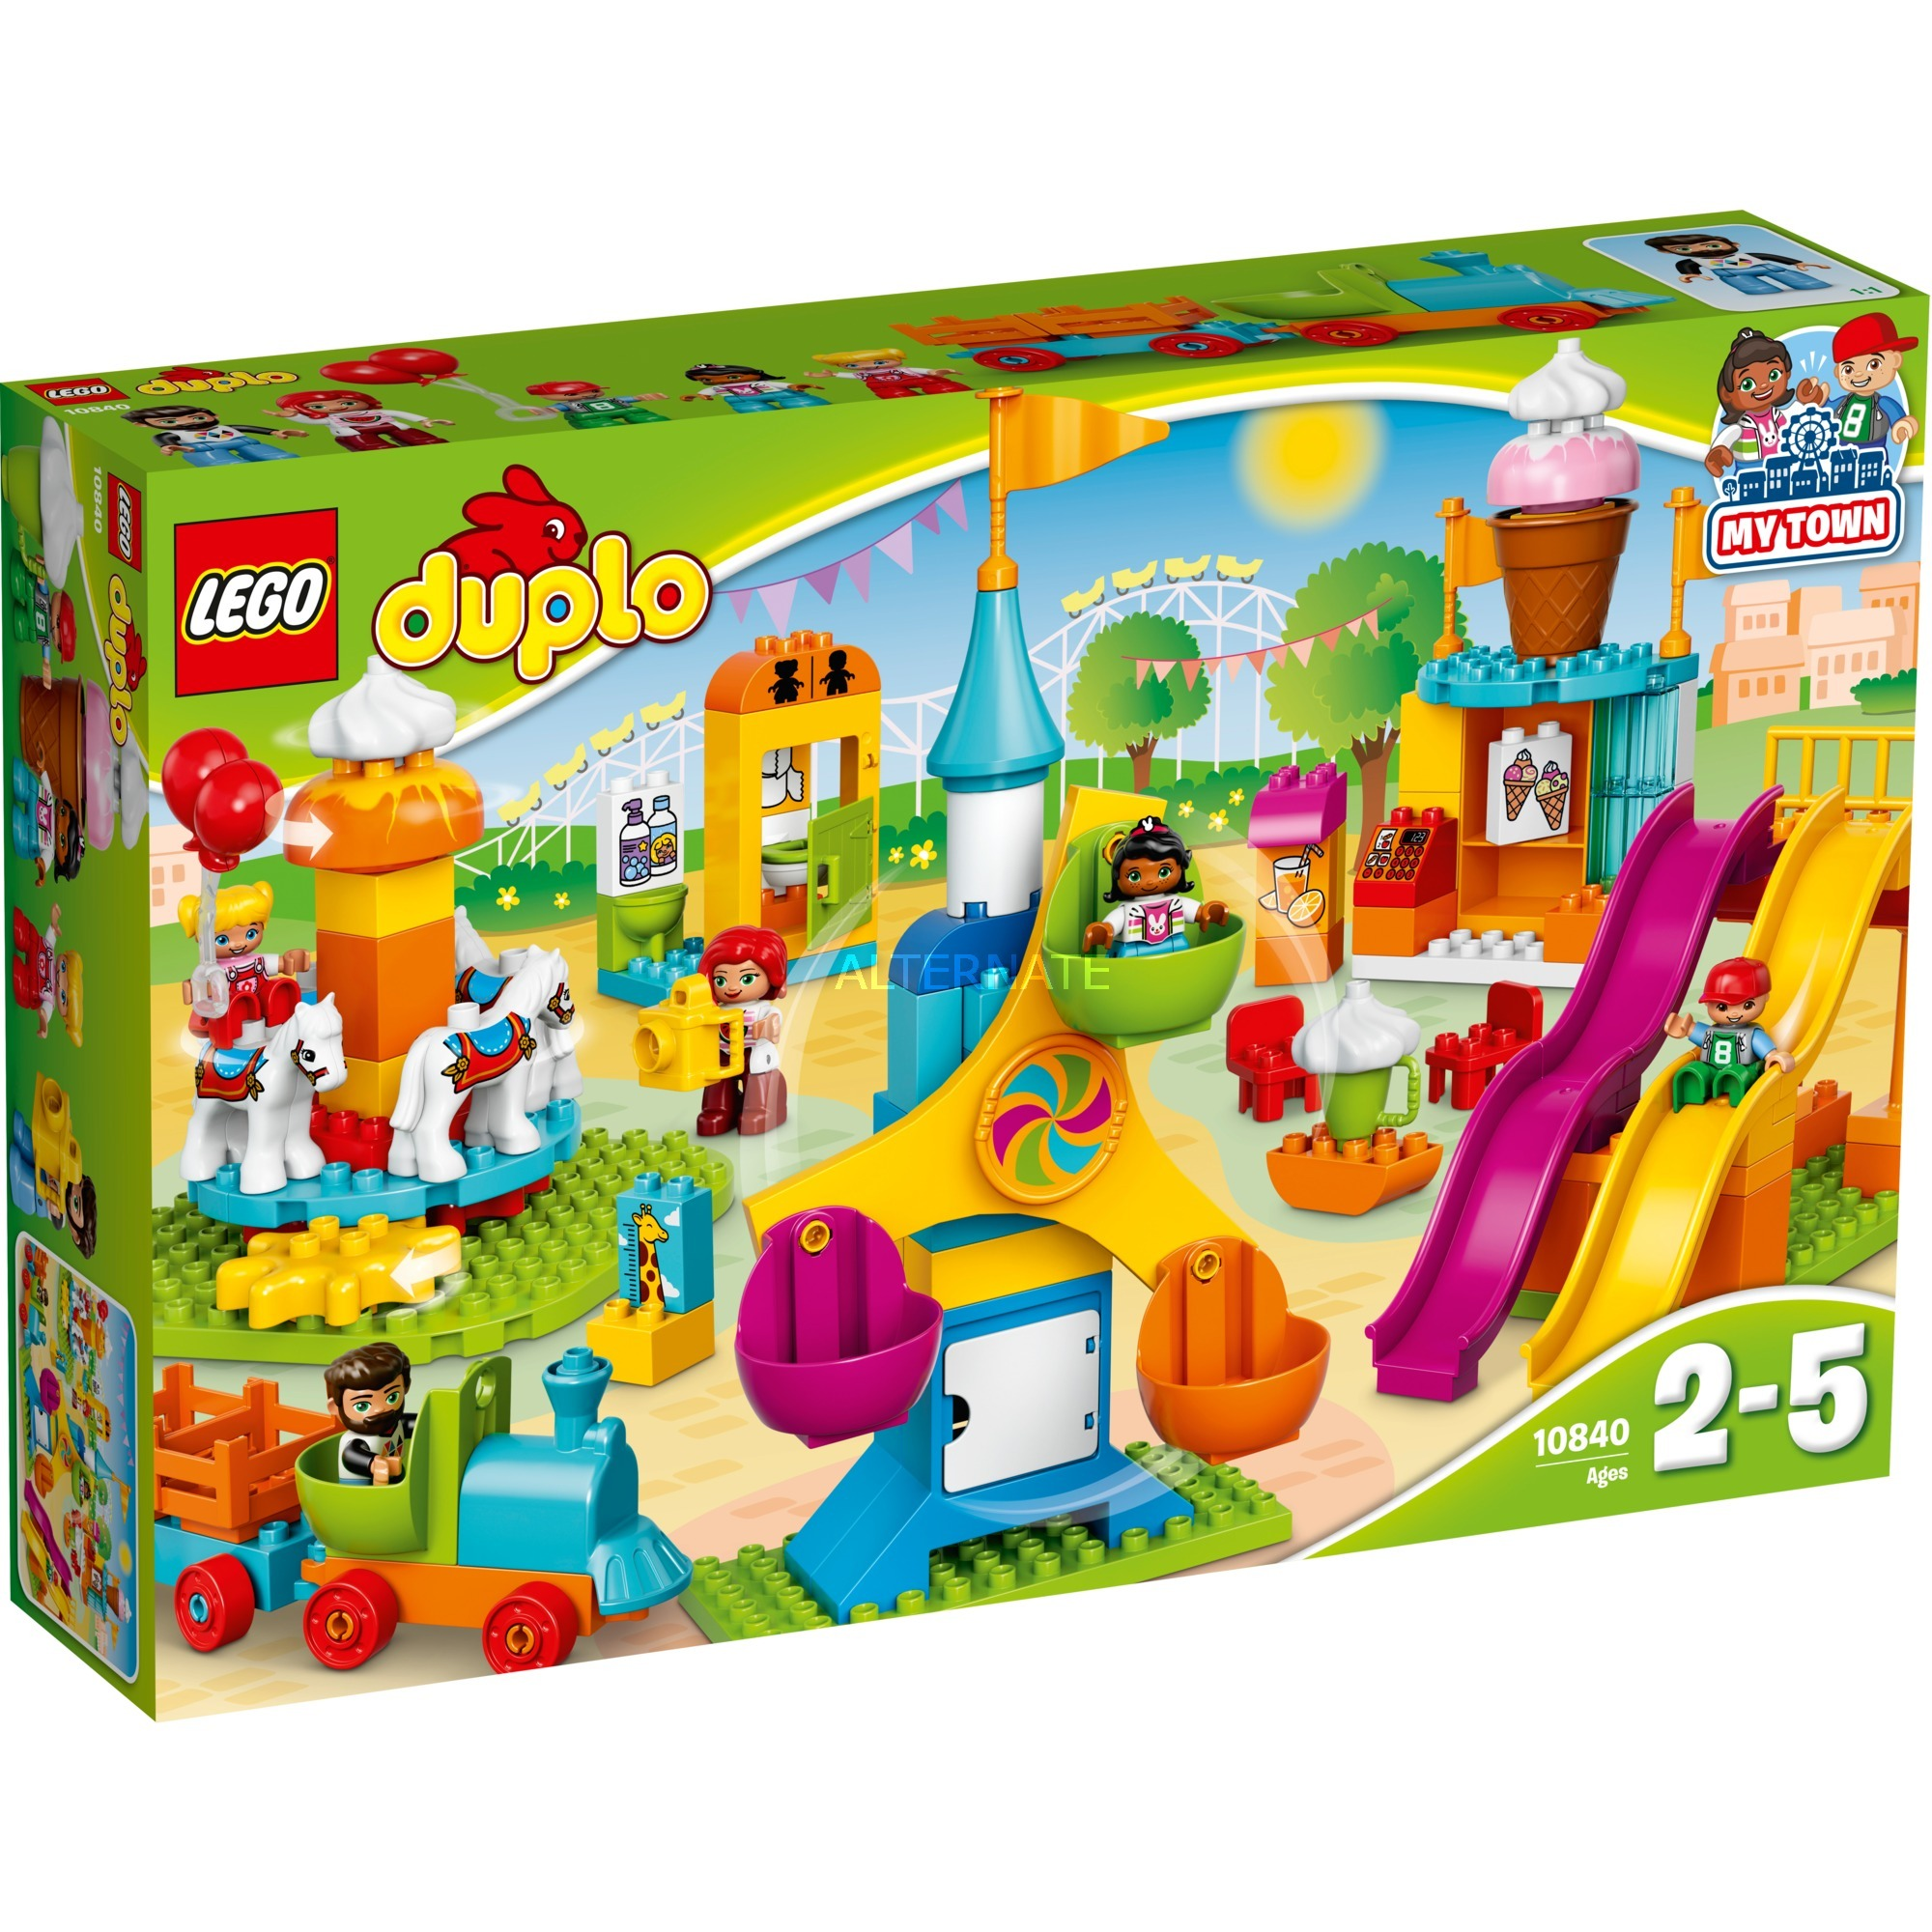 DUPLO - Le parc d'attraction, Jouets de construction